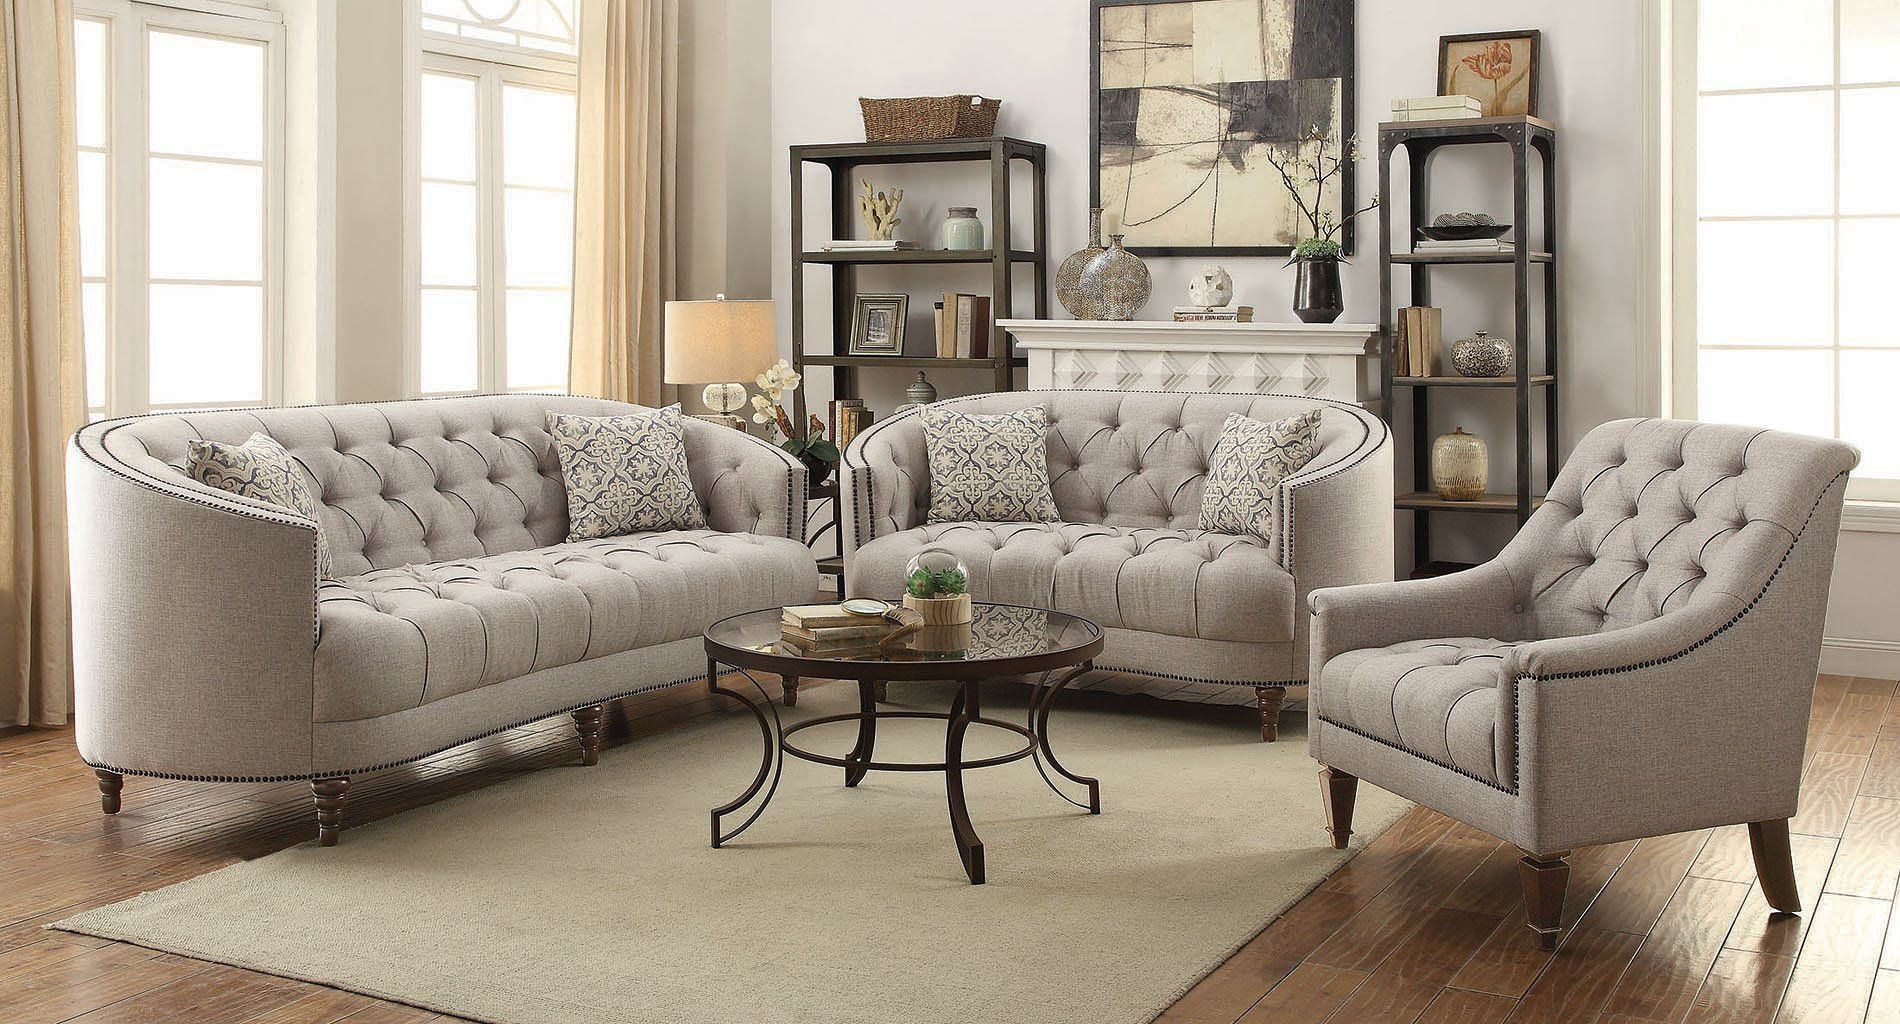 Updating The Classic Traditional Looks Of C Shaped Sofas We Ve